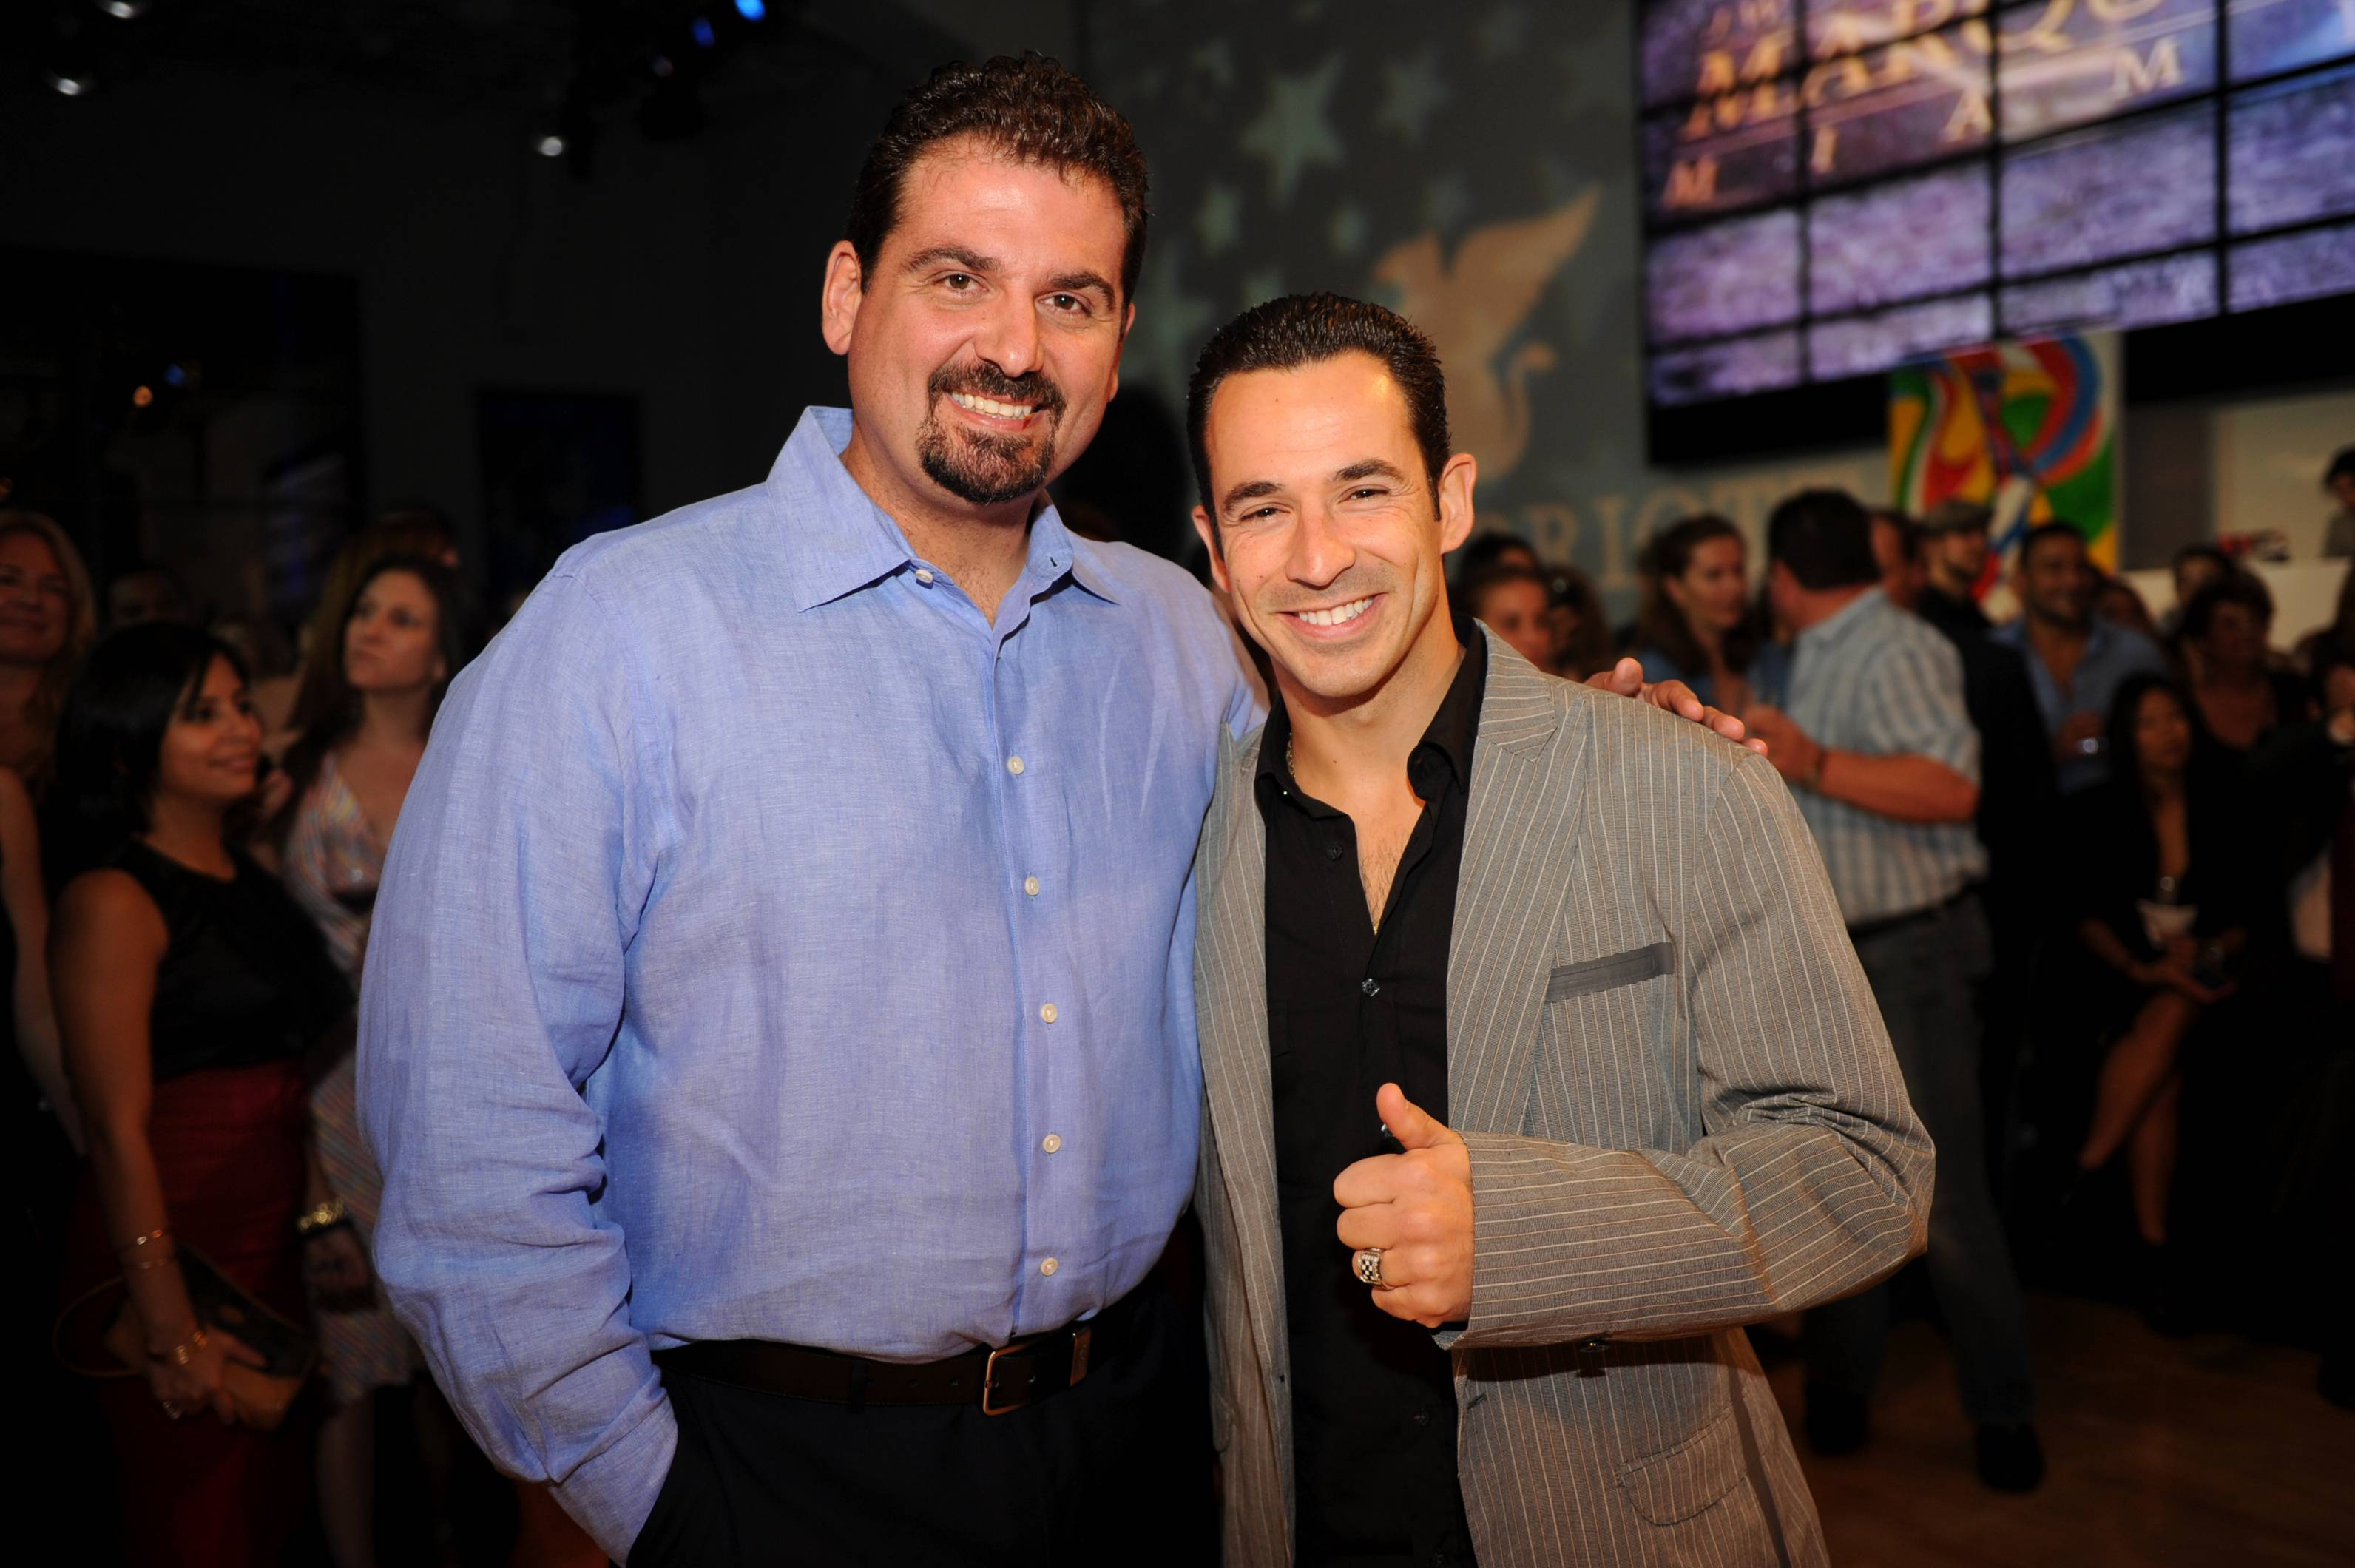 Dan Lebatard & Helio Castroneves